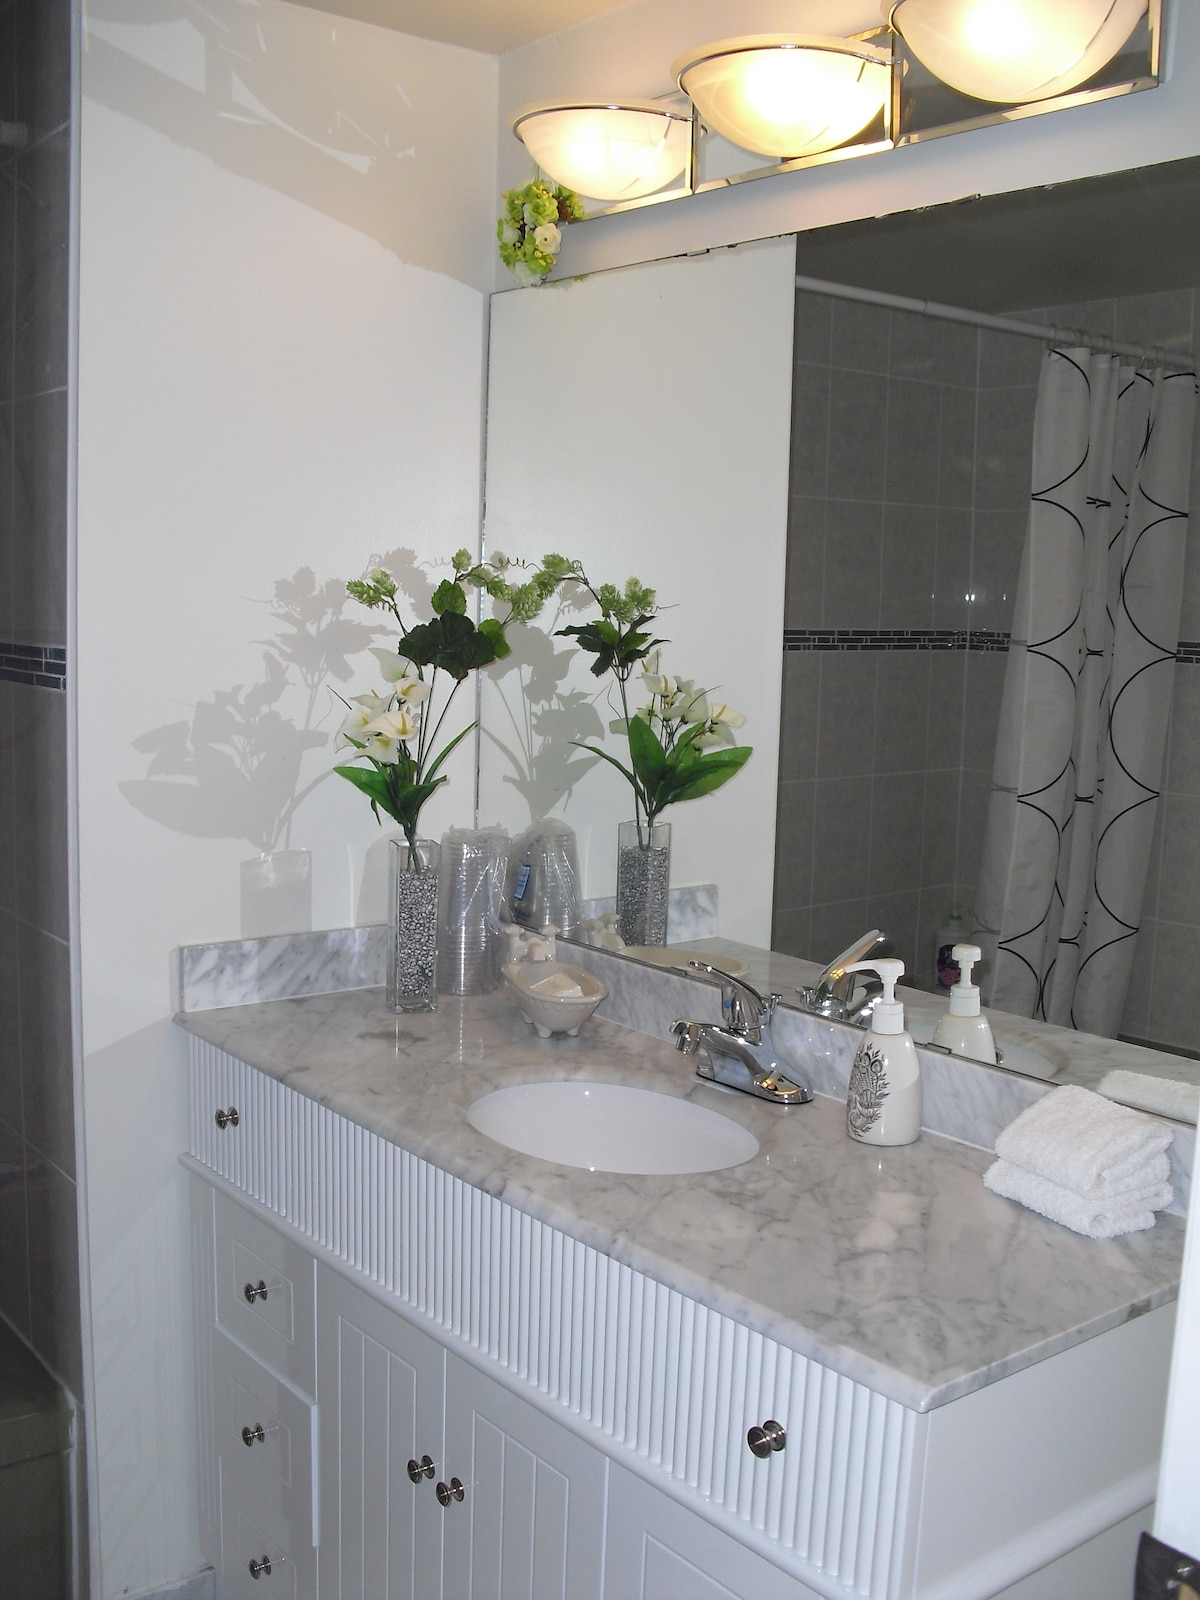 Private bathroom.  Beautiful marble counter top and large mirror in bright bathroom